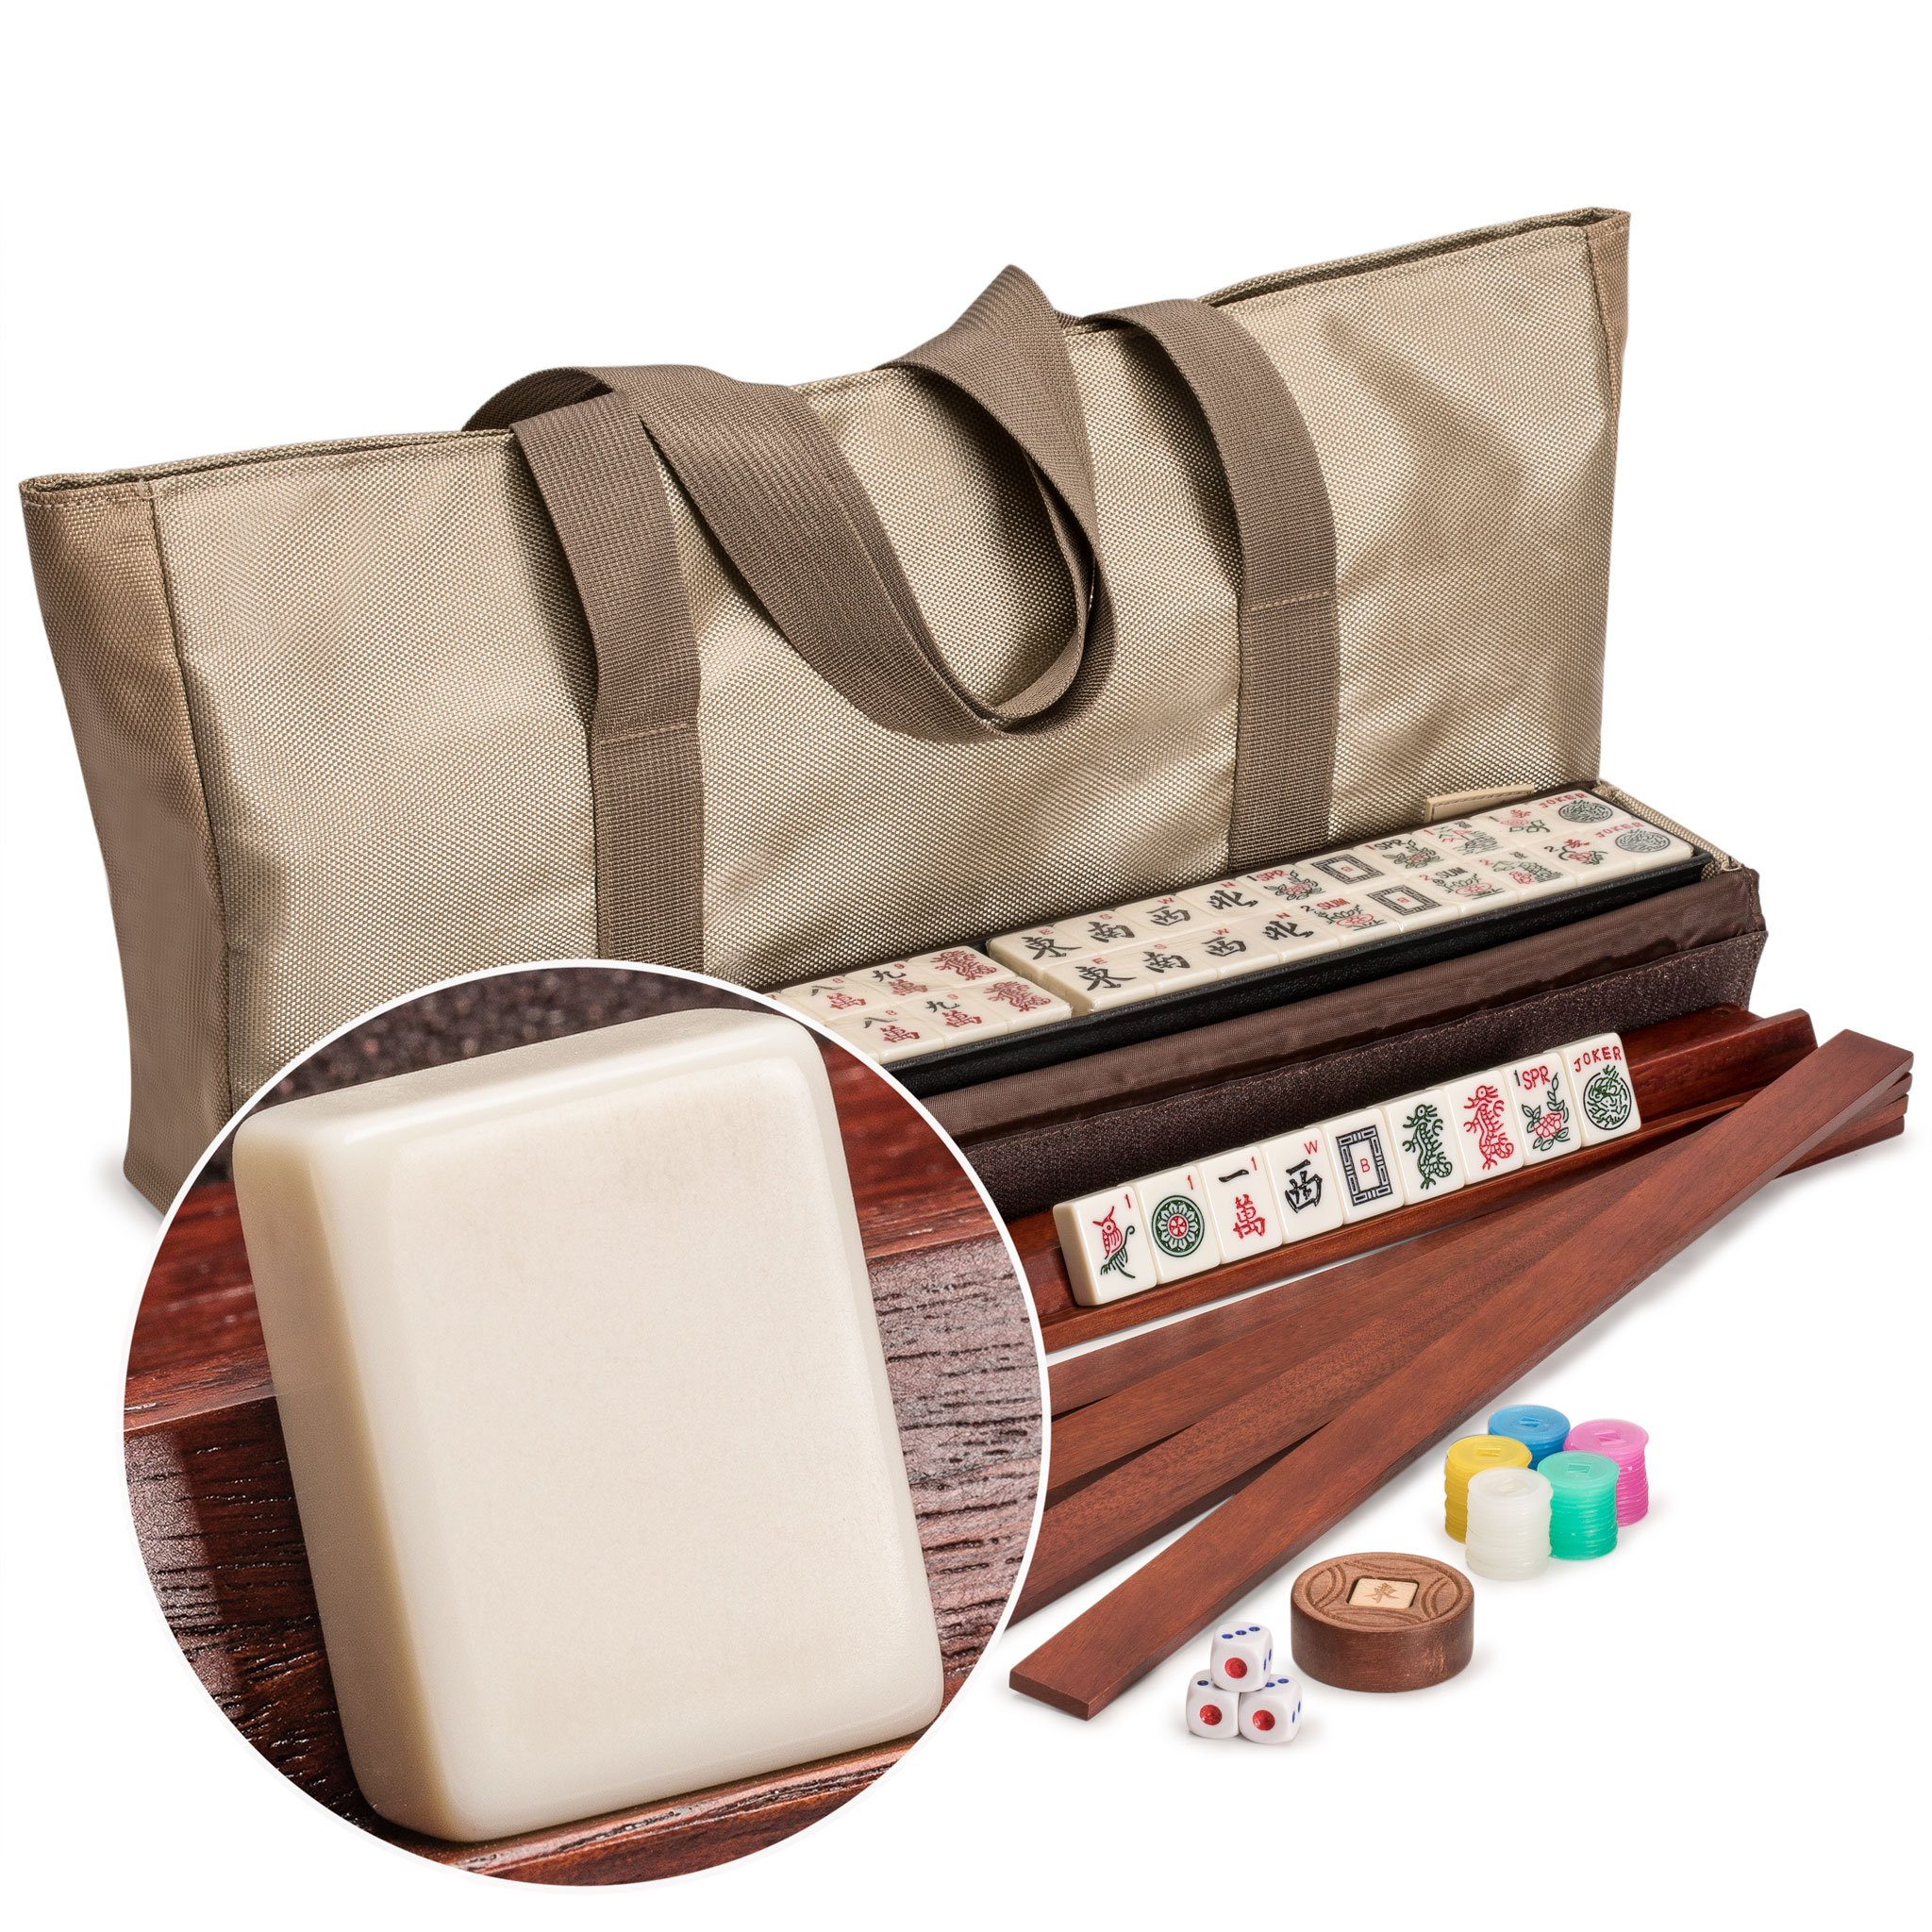 Yellow Mountain Imports American Mahjong (Mah Jong, Mahjongg, Mah-Jongg, Mah Jongg) Set with 166 Tiles, All-In-One Racks with Pushers, Accessories, and Soft Case, The Mojave